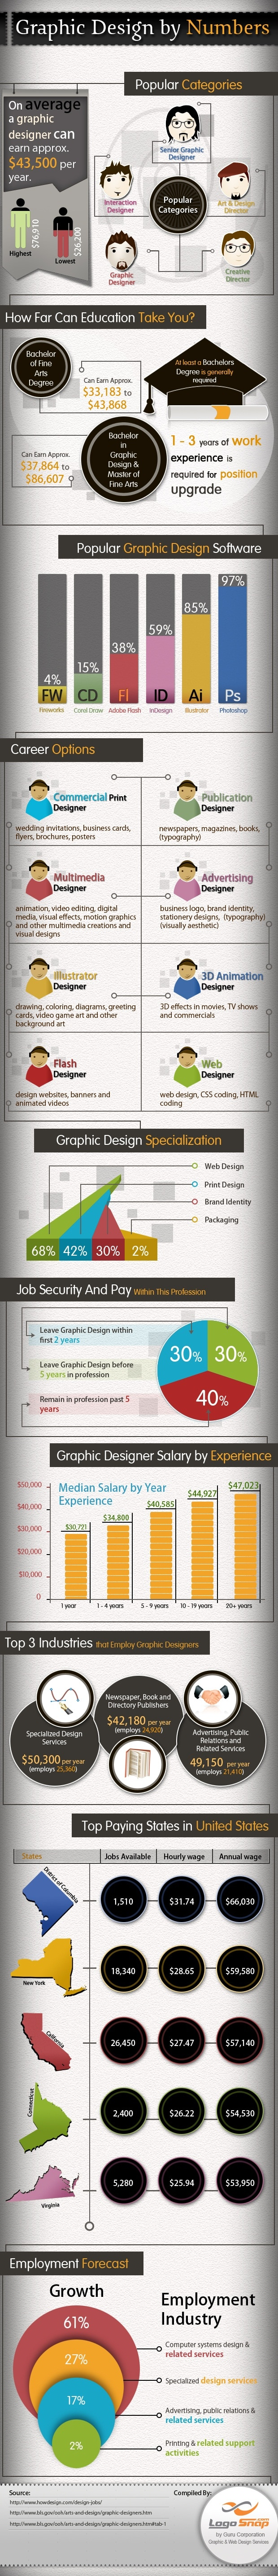 graphic-design-career-numbers-infographic